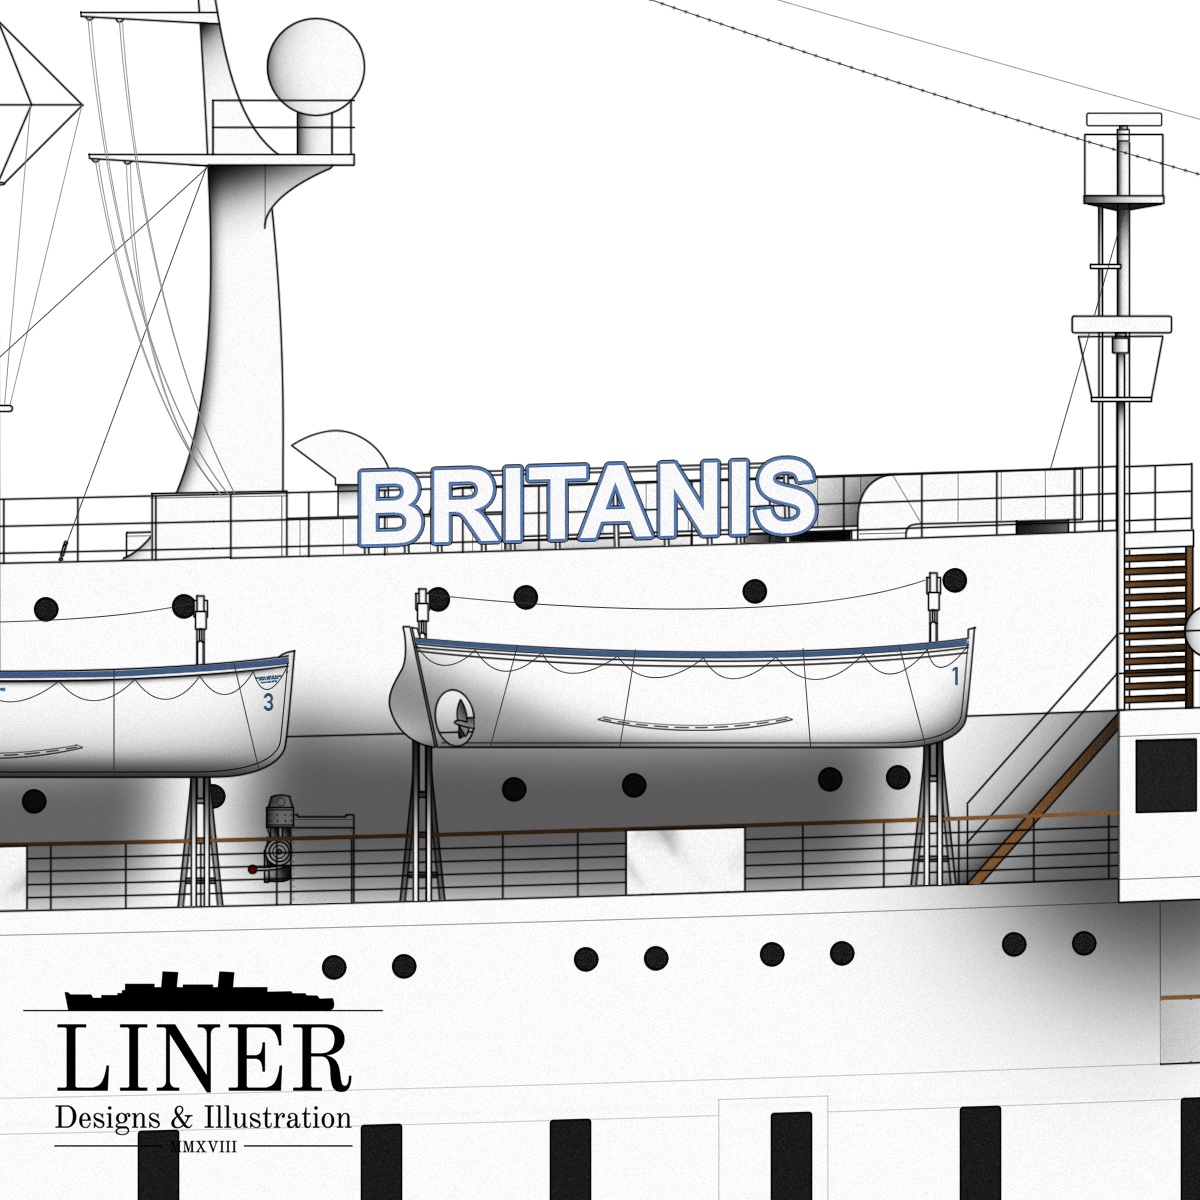 Britanis boasted a radar suite compliant with modern regulations - despite having been launched back in 1931!